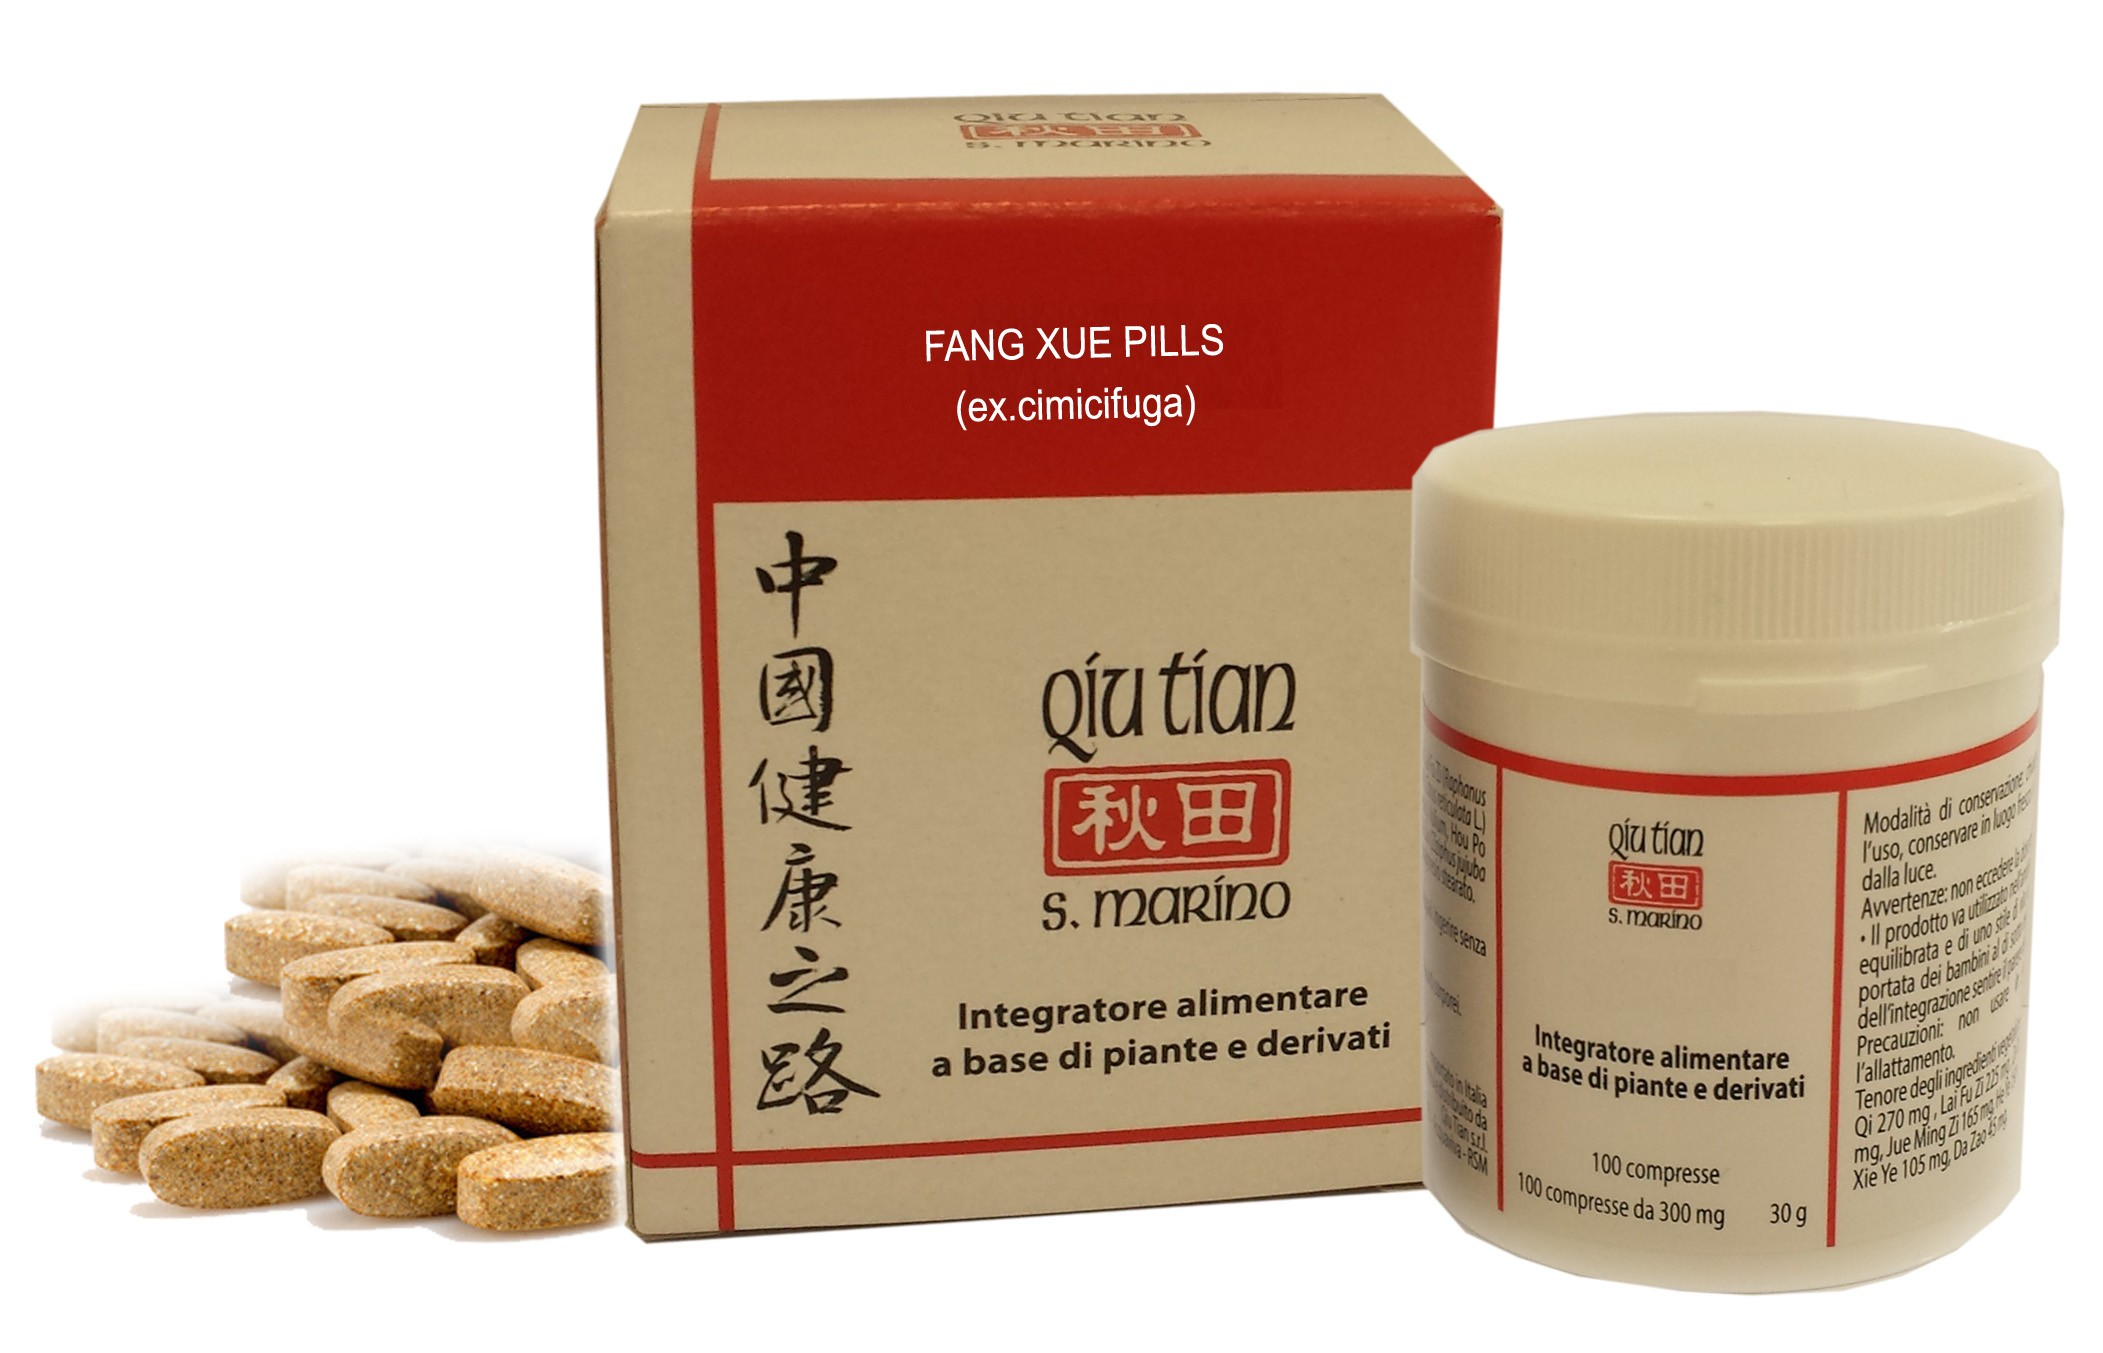 FANG XUE PILLS 100 COMPRESSE